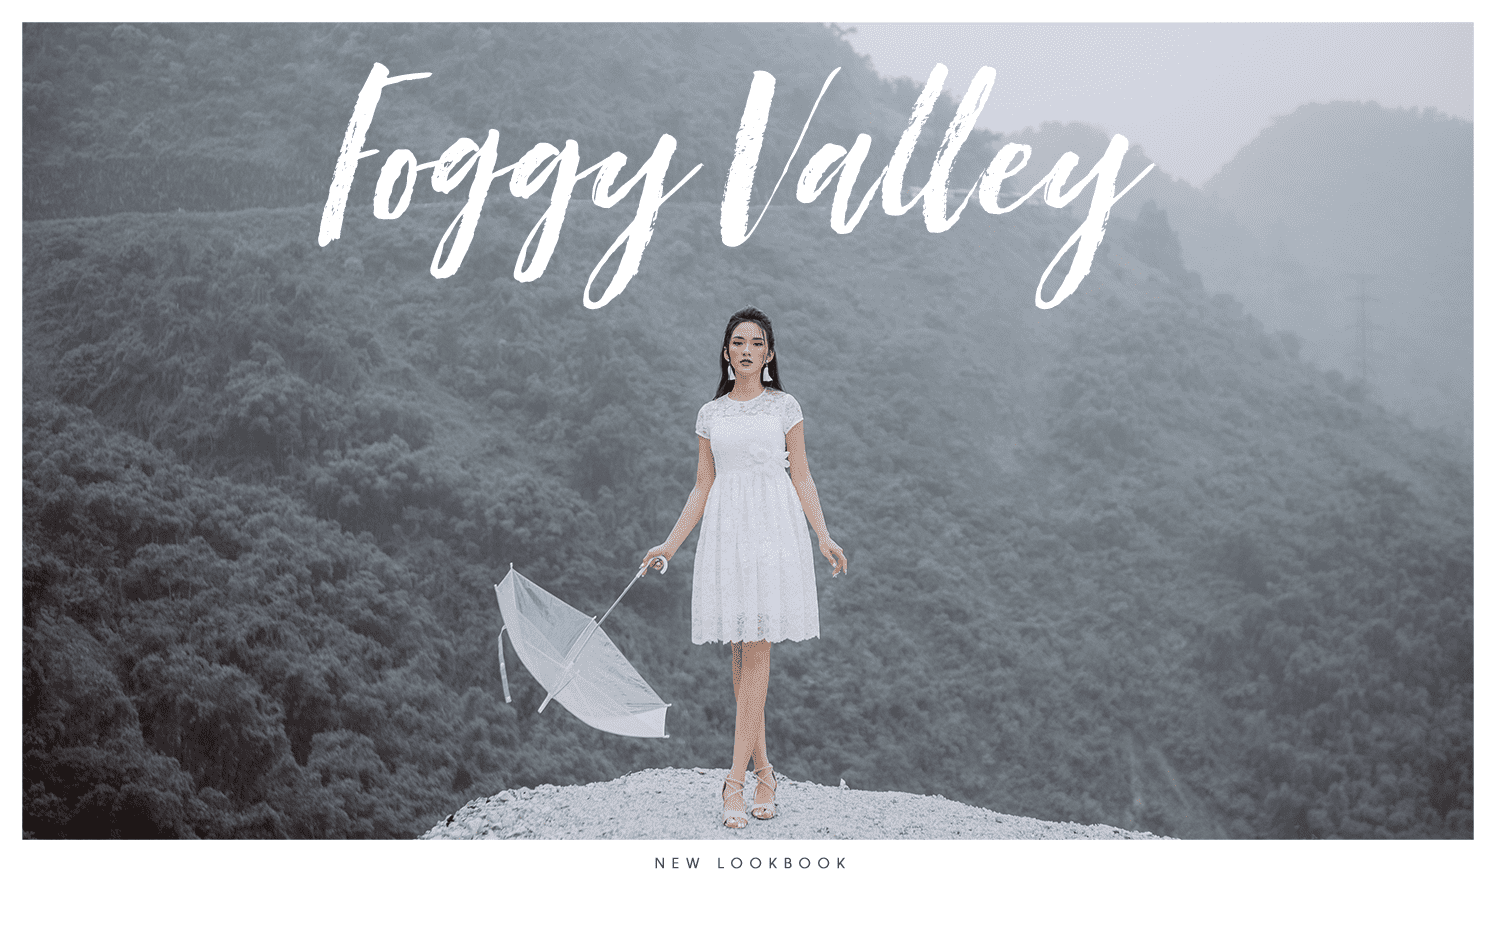 Foggy Valley